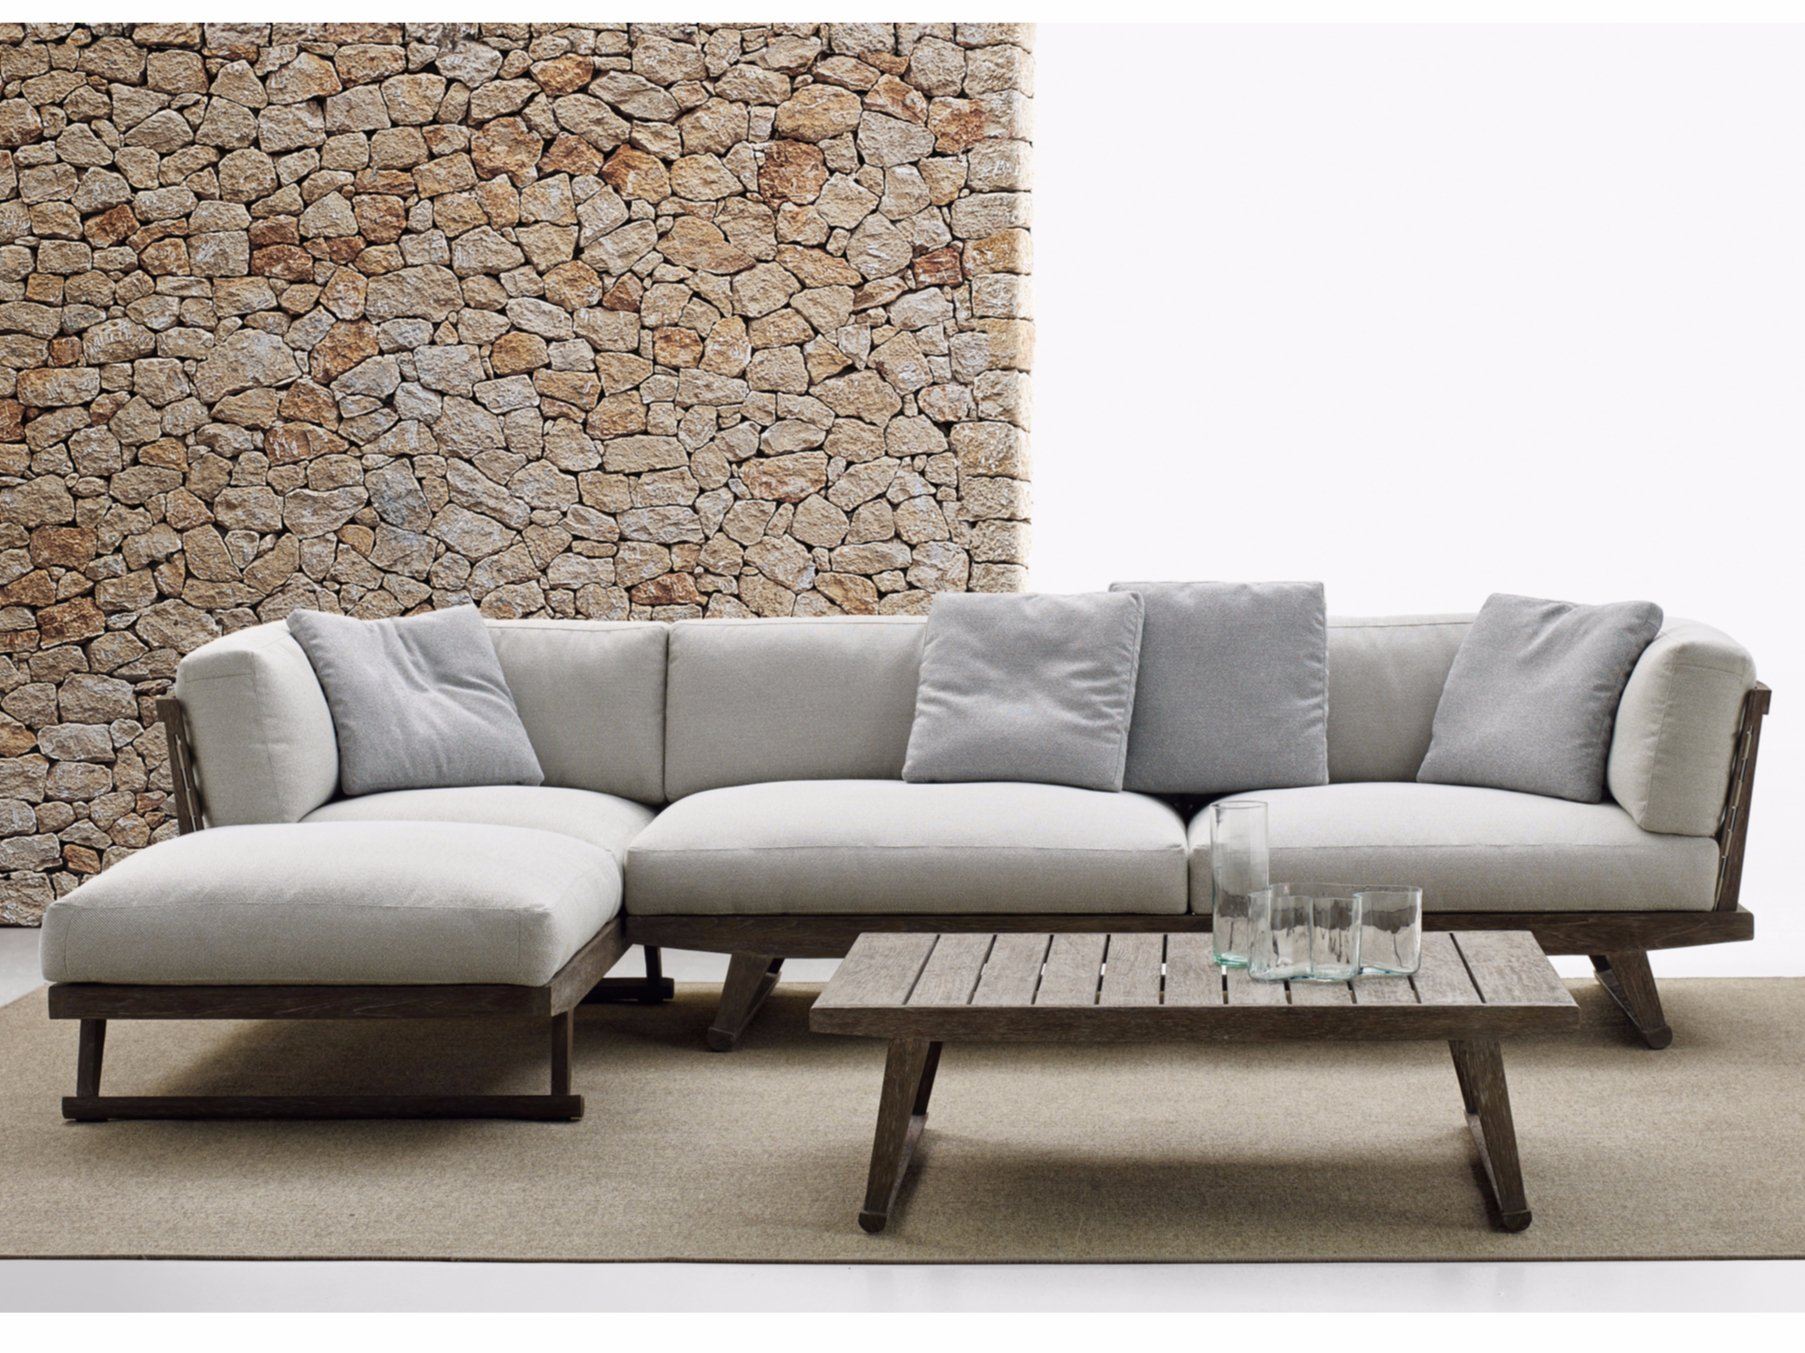 Gio sofa with chaise longue gio collection by b b italia for Sofa rinconera exterior